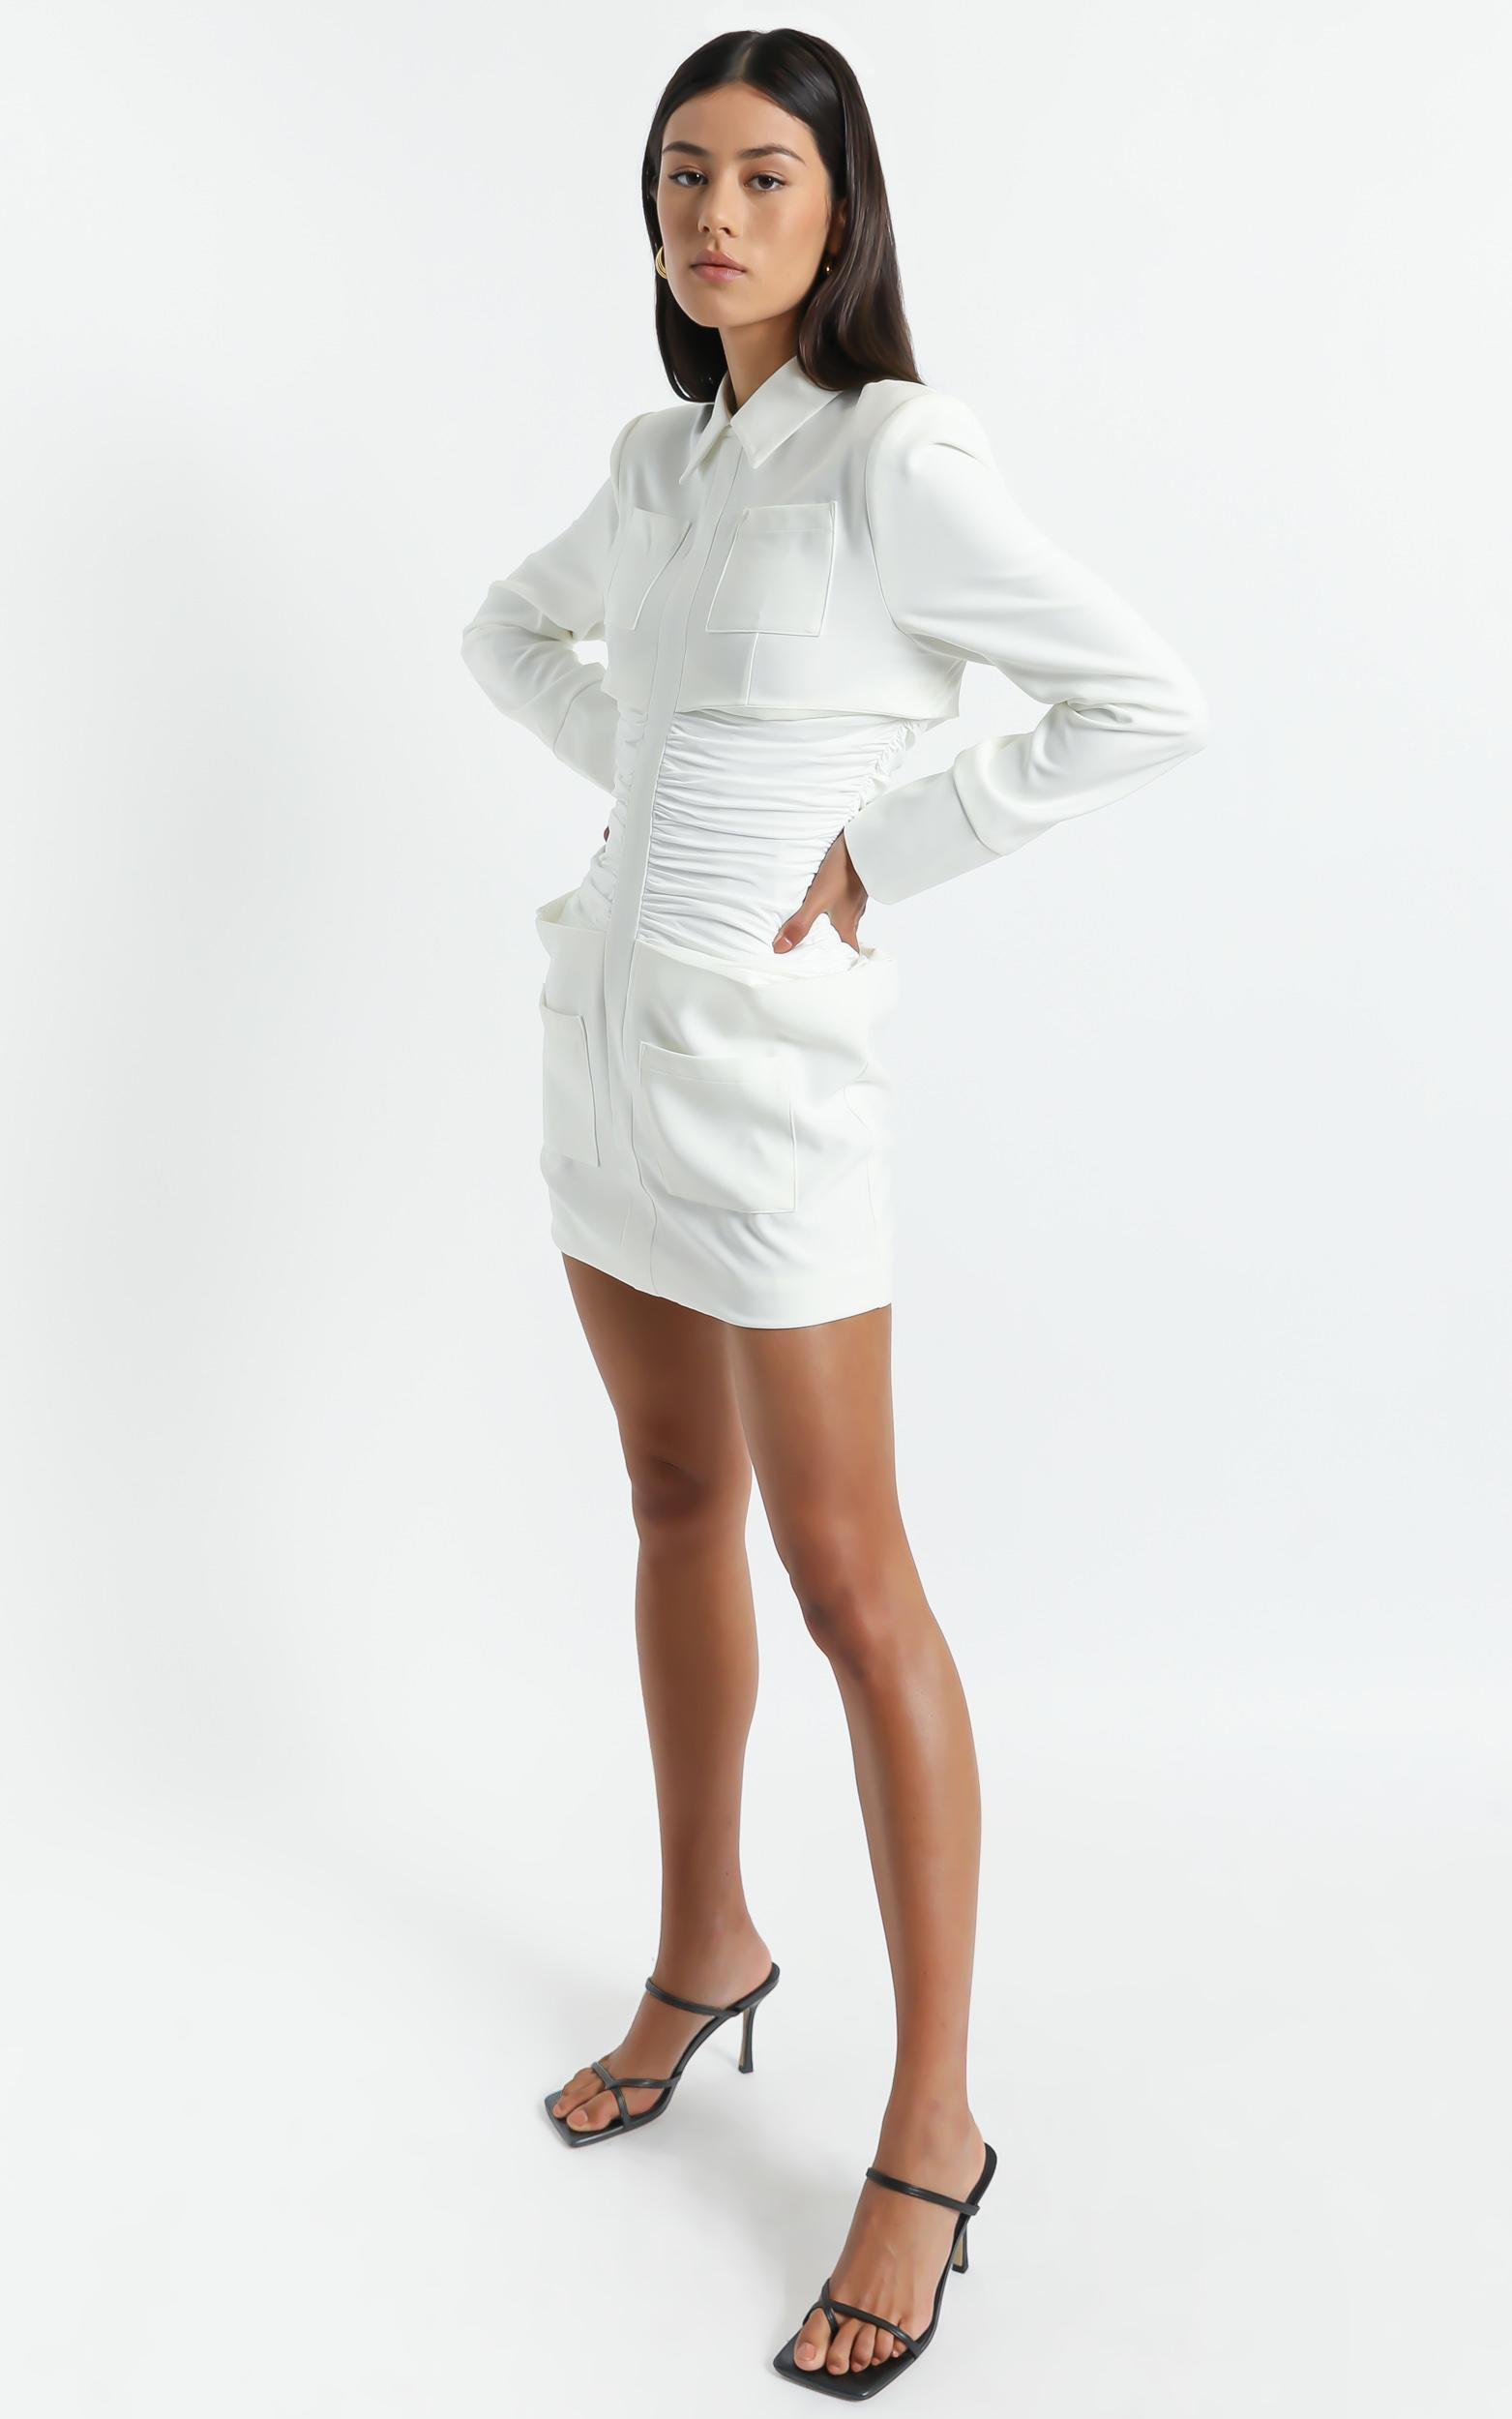 Lioness - The Sweetest Thing Mini Dress in White - XS, White, hi-res image number null